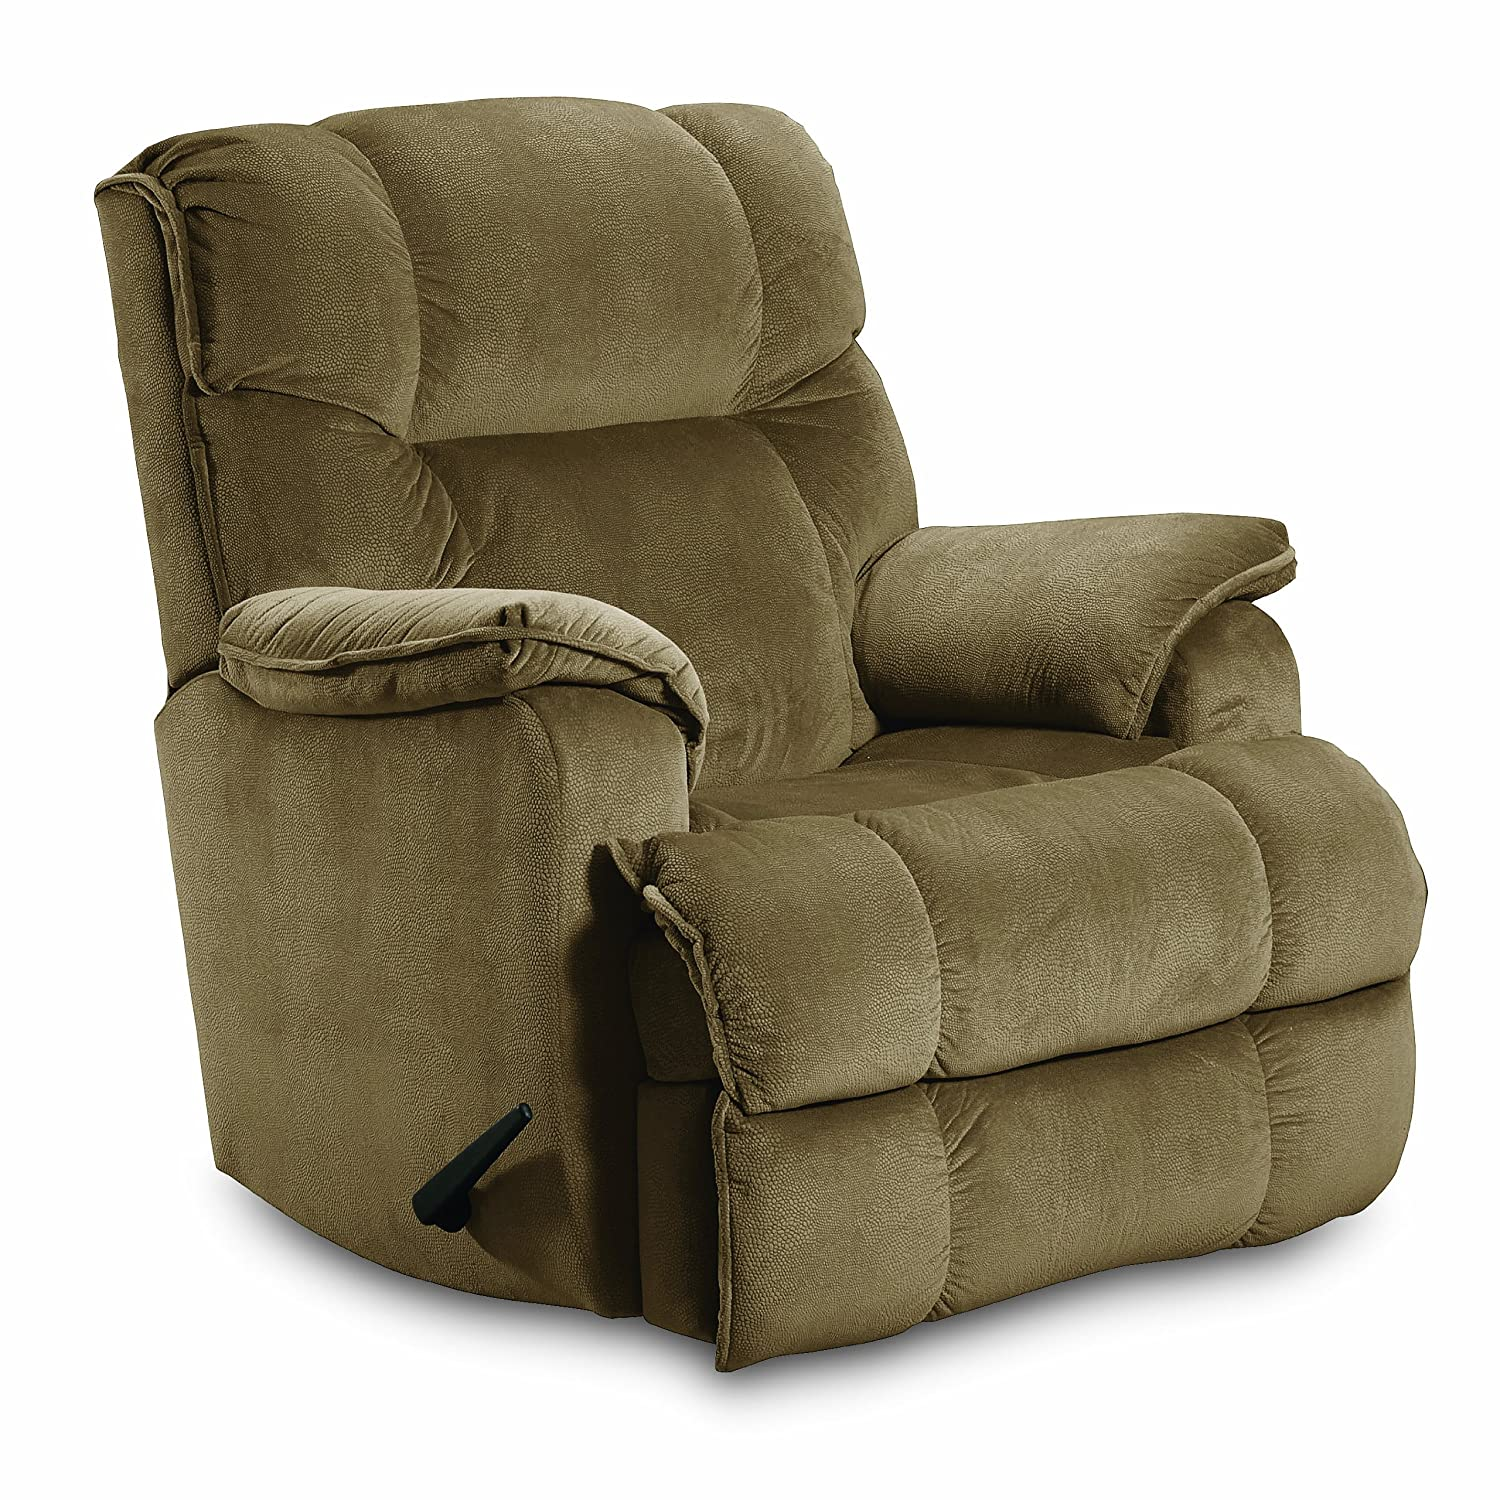 Amazon.com Lane ComfortKing Grant Rocker Recliner for Big and Tall Tan Kitchen u0026 Dining  sc 1 st  Amazon.com & Amazon.com: Lane ComfortKing Grant Rocker Recliner for Big and ... islam-shia.org